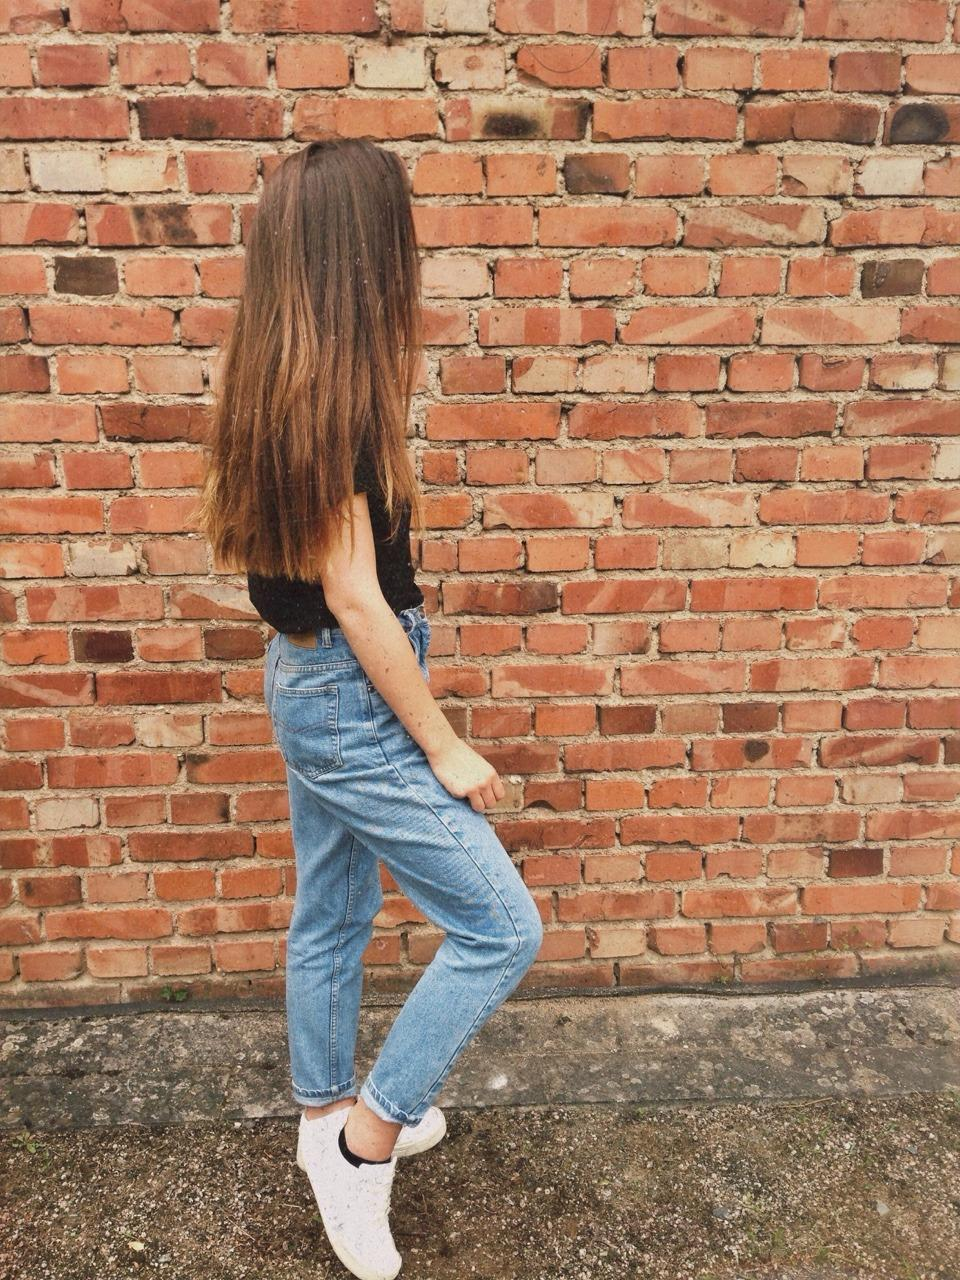 #momjeans #hair #wall